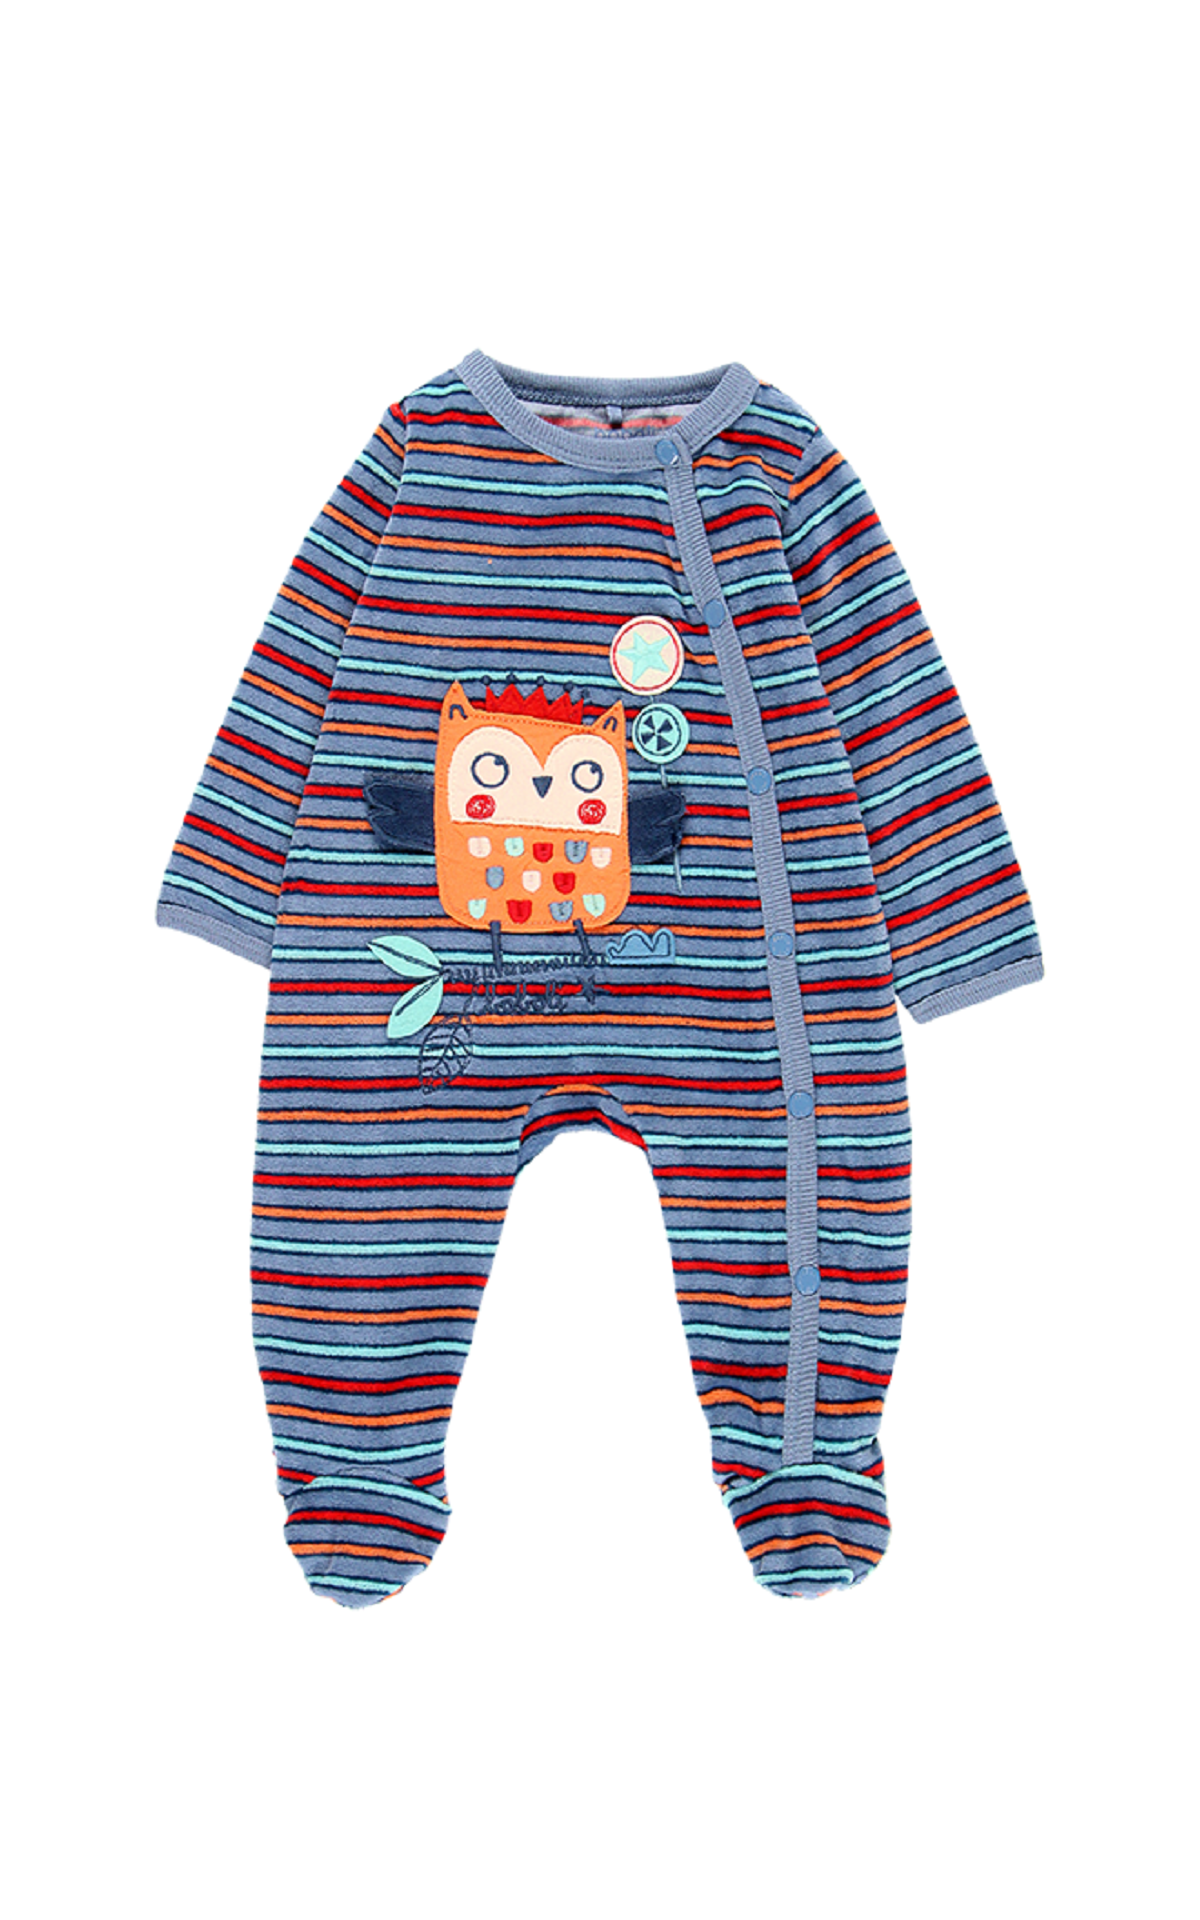 Blue striped body boboli